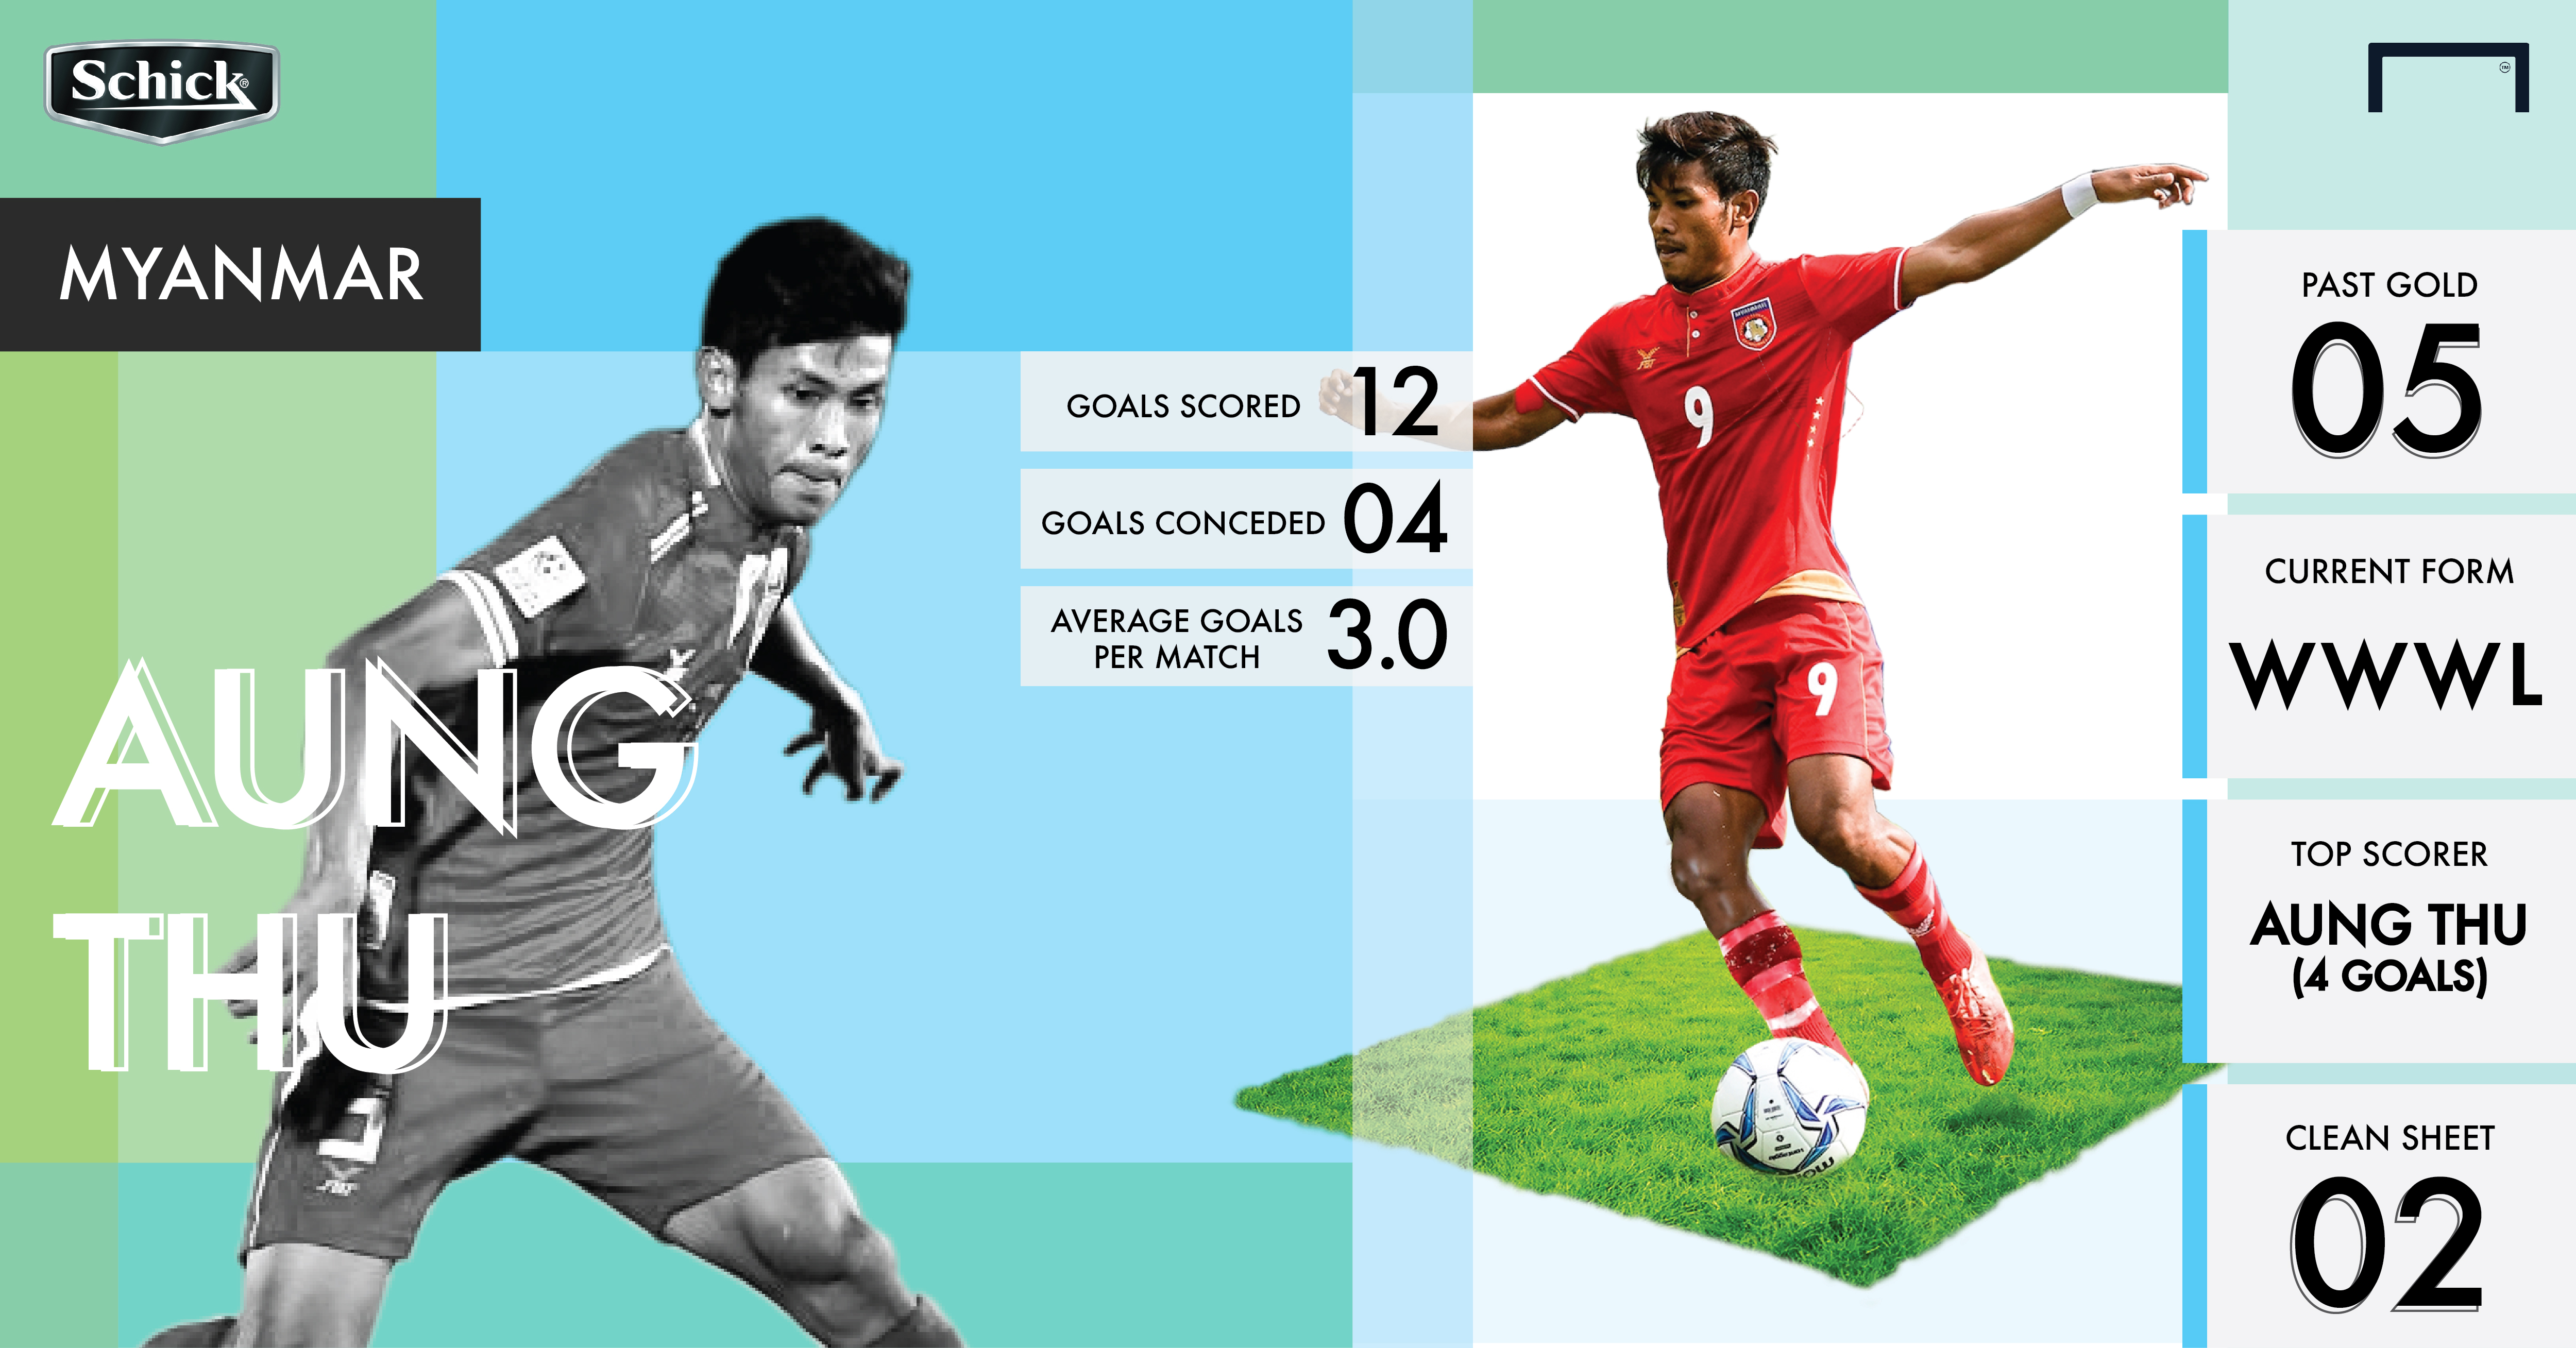 Myanmar, Schick, commercial, SEA Games